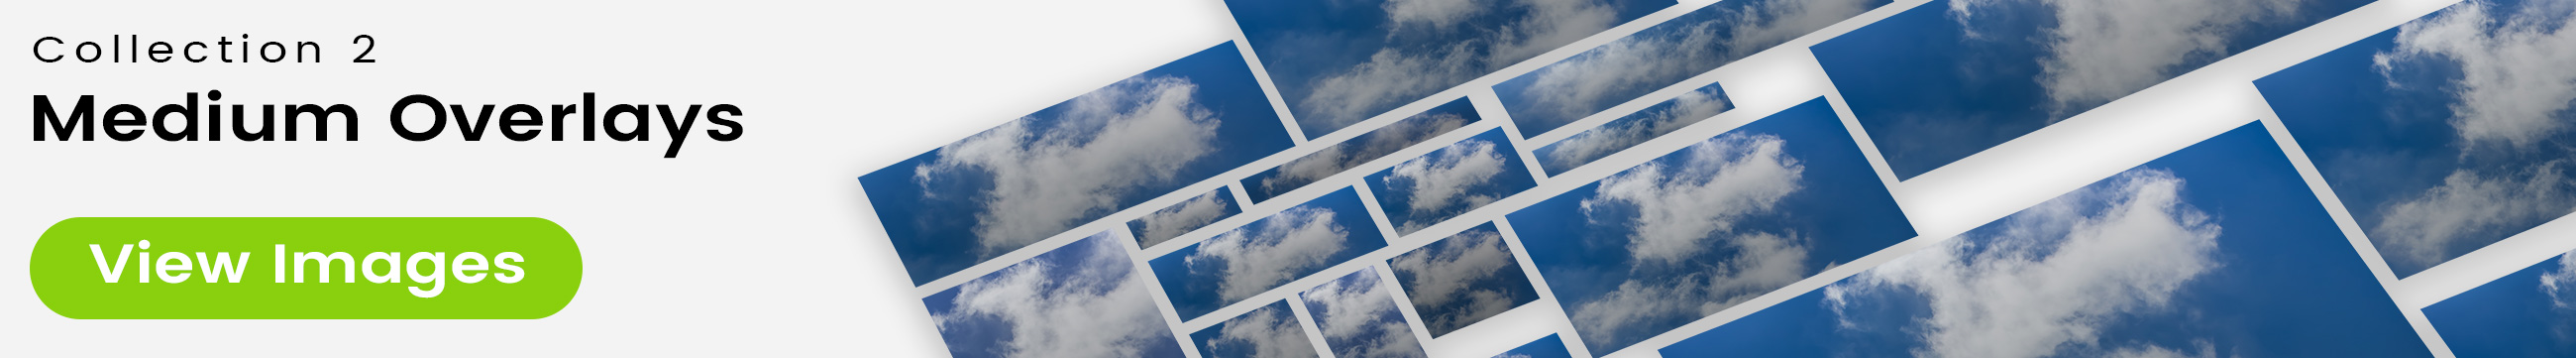 See 25 bonus images included with clouds stock image 9473. Collection 2 of 4 features a medium-dark overlay design.